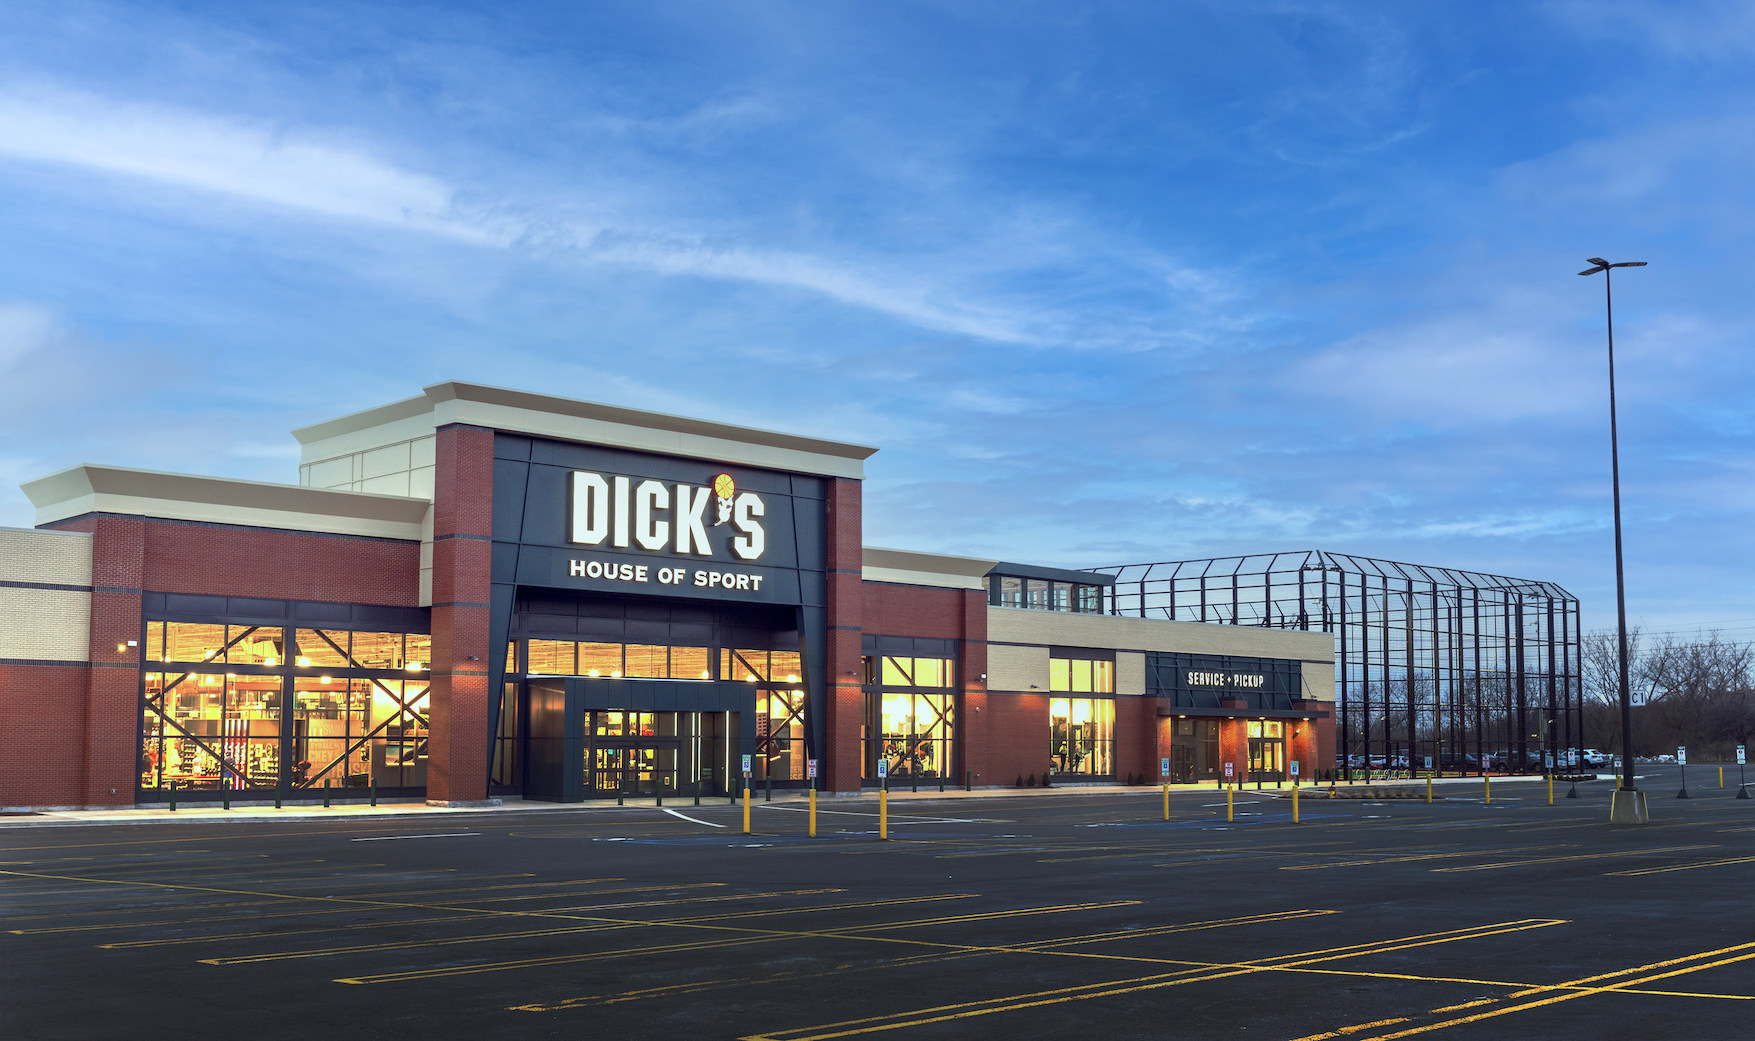 Dick's Sporting Goods House of Sport in Rochester, N.Y.